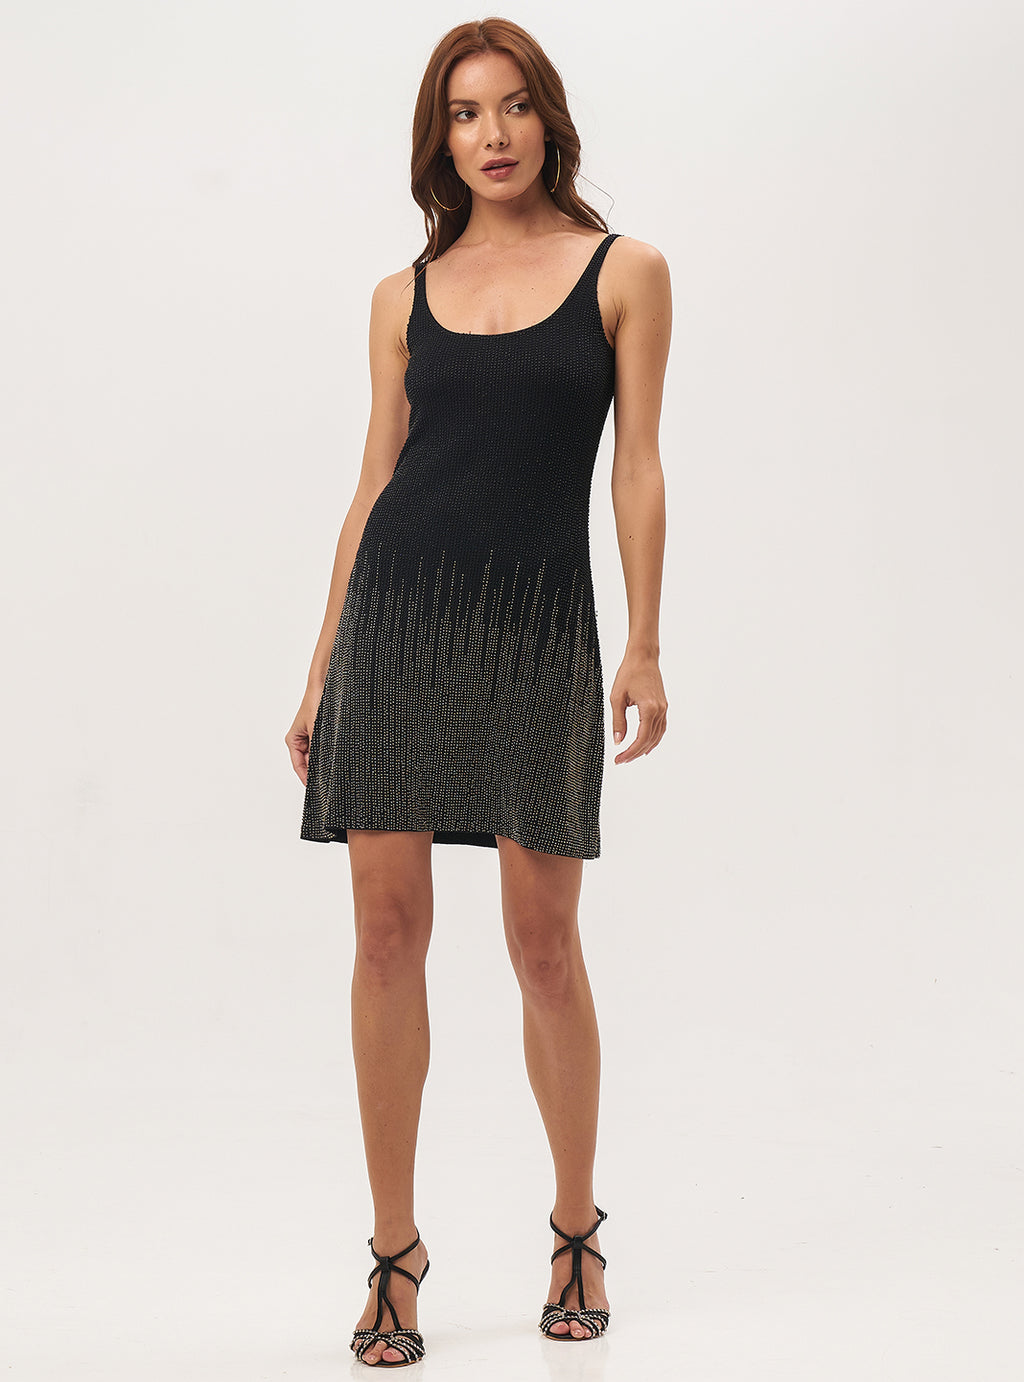 Glass Beads Black Dress - Lily Jean